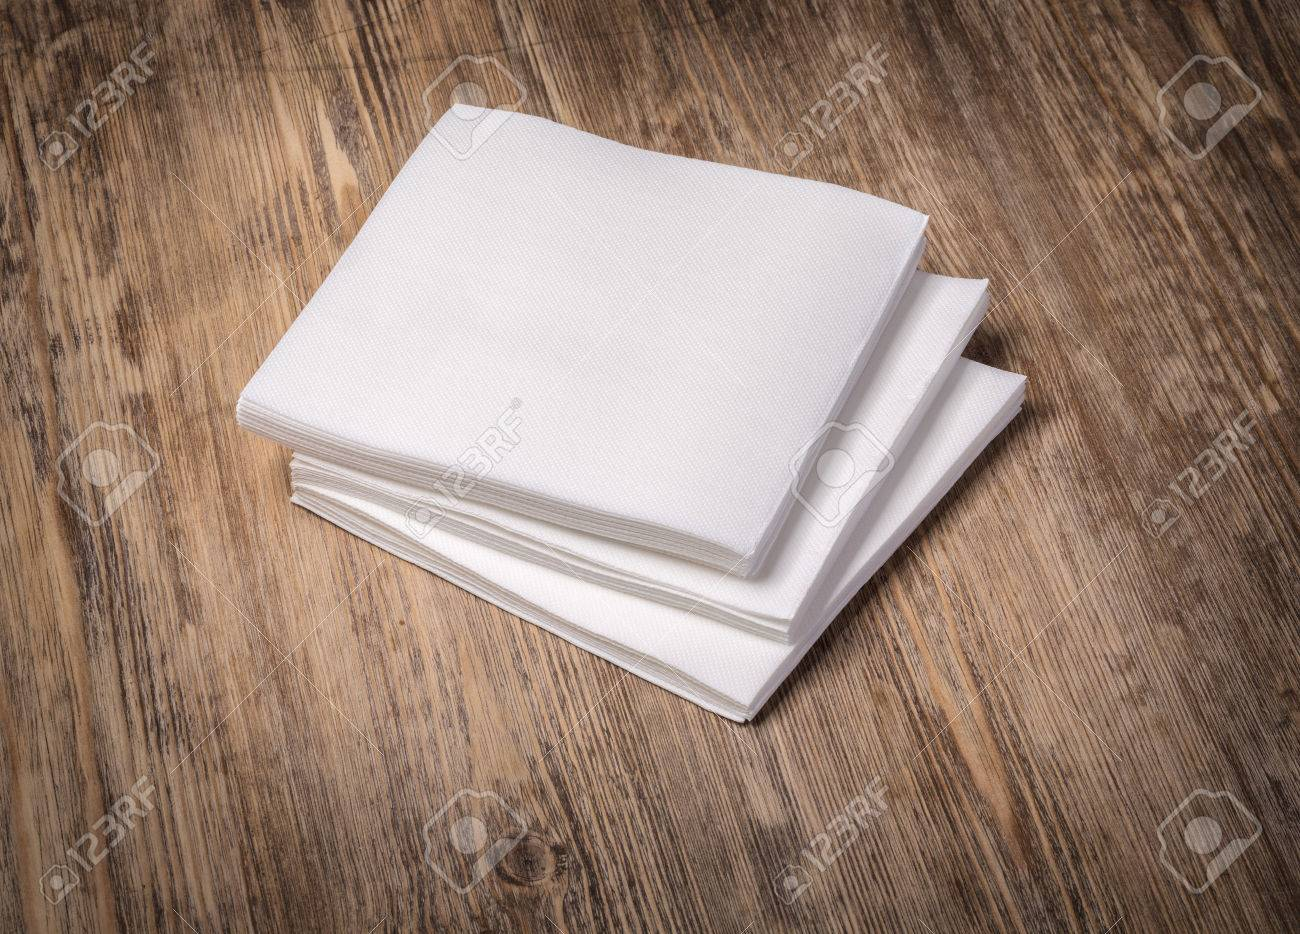 white paper napkin on old wooden table - 65356440